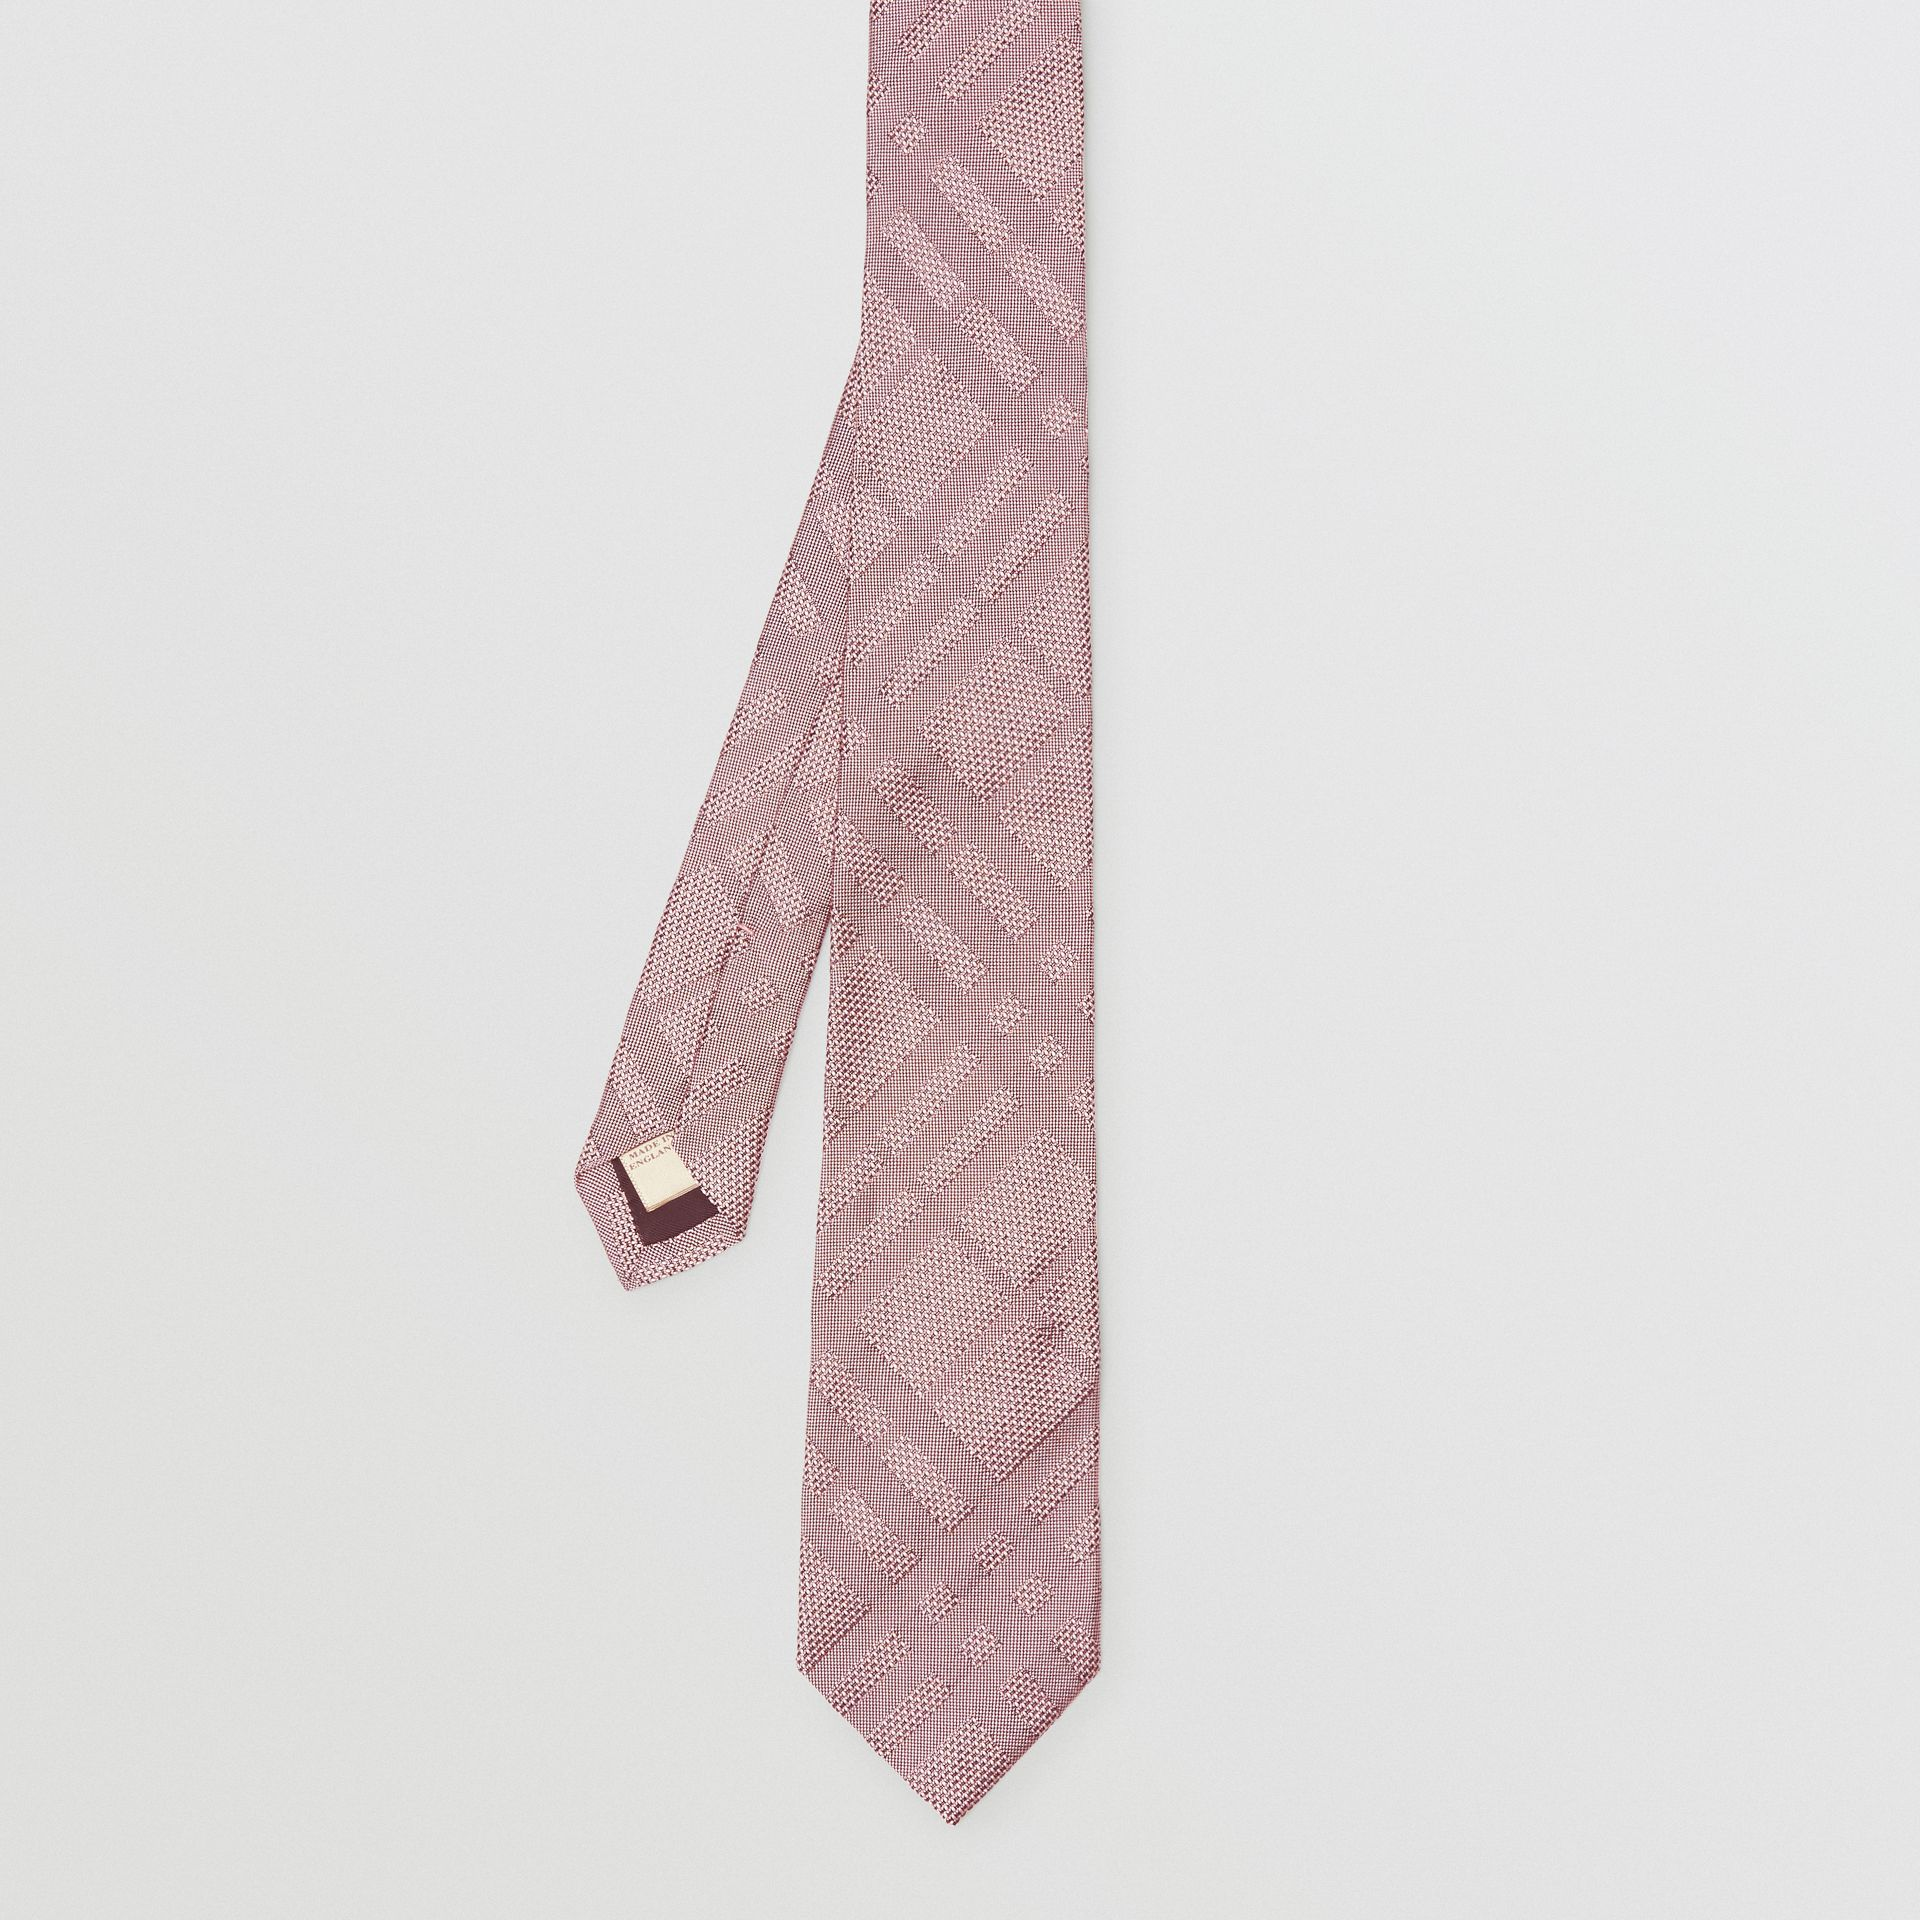 Modern Cut Check Silk Jacquard Tie in Alabaster Pink - Men | Burberry United Kingdom - gallery image 4